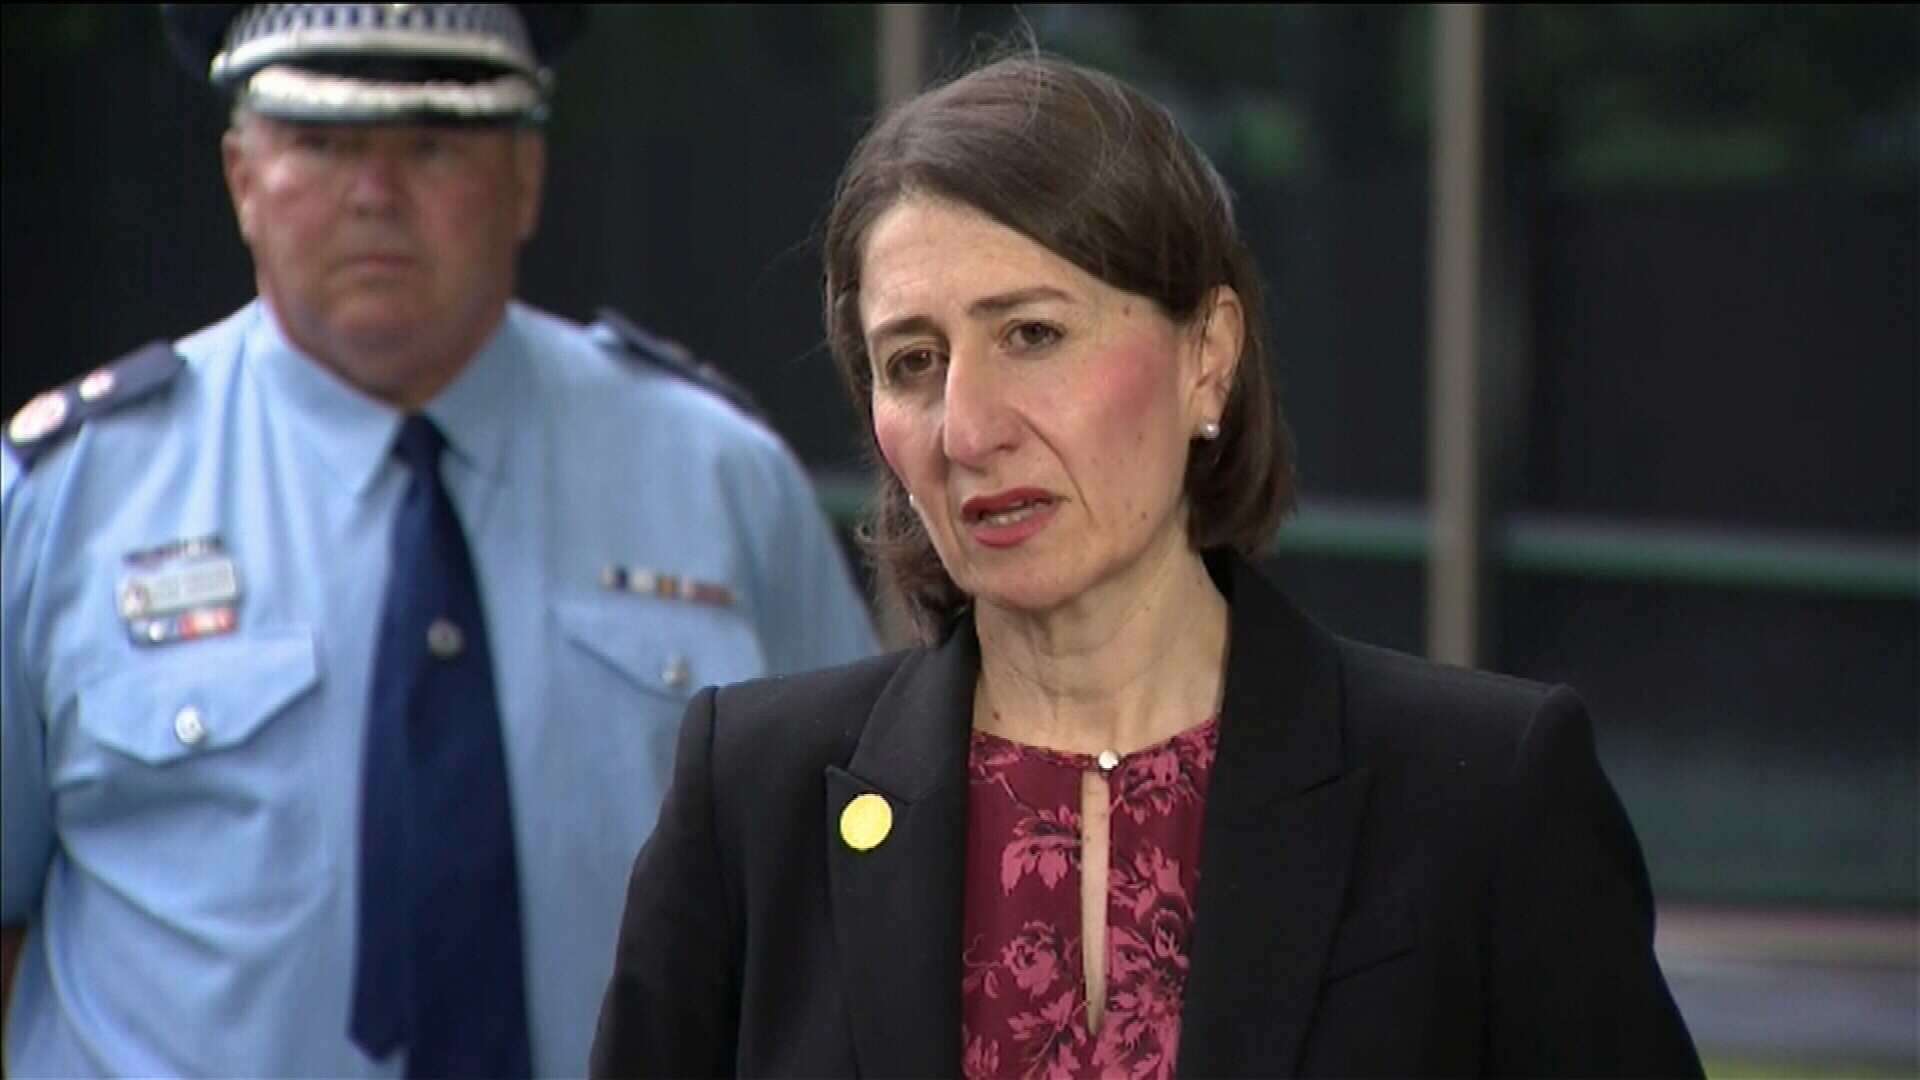 Premier Gladys Berejiklian at a media briefing on Thursday, where it was declared NSW COVID-19 cases have risen to 1219, with 190 new positive tests overnight.